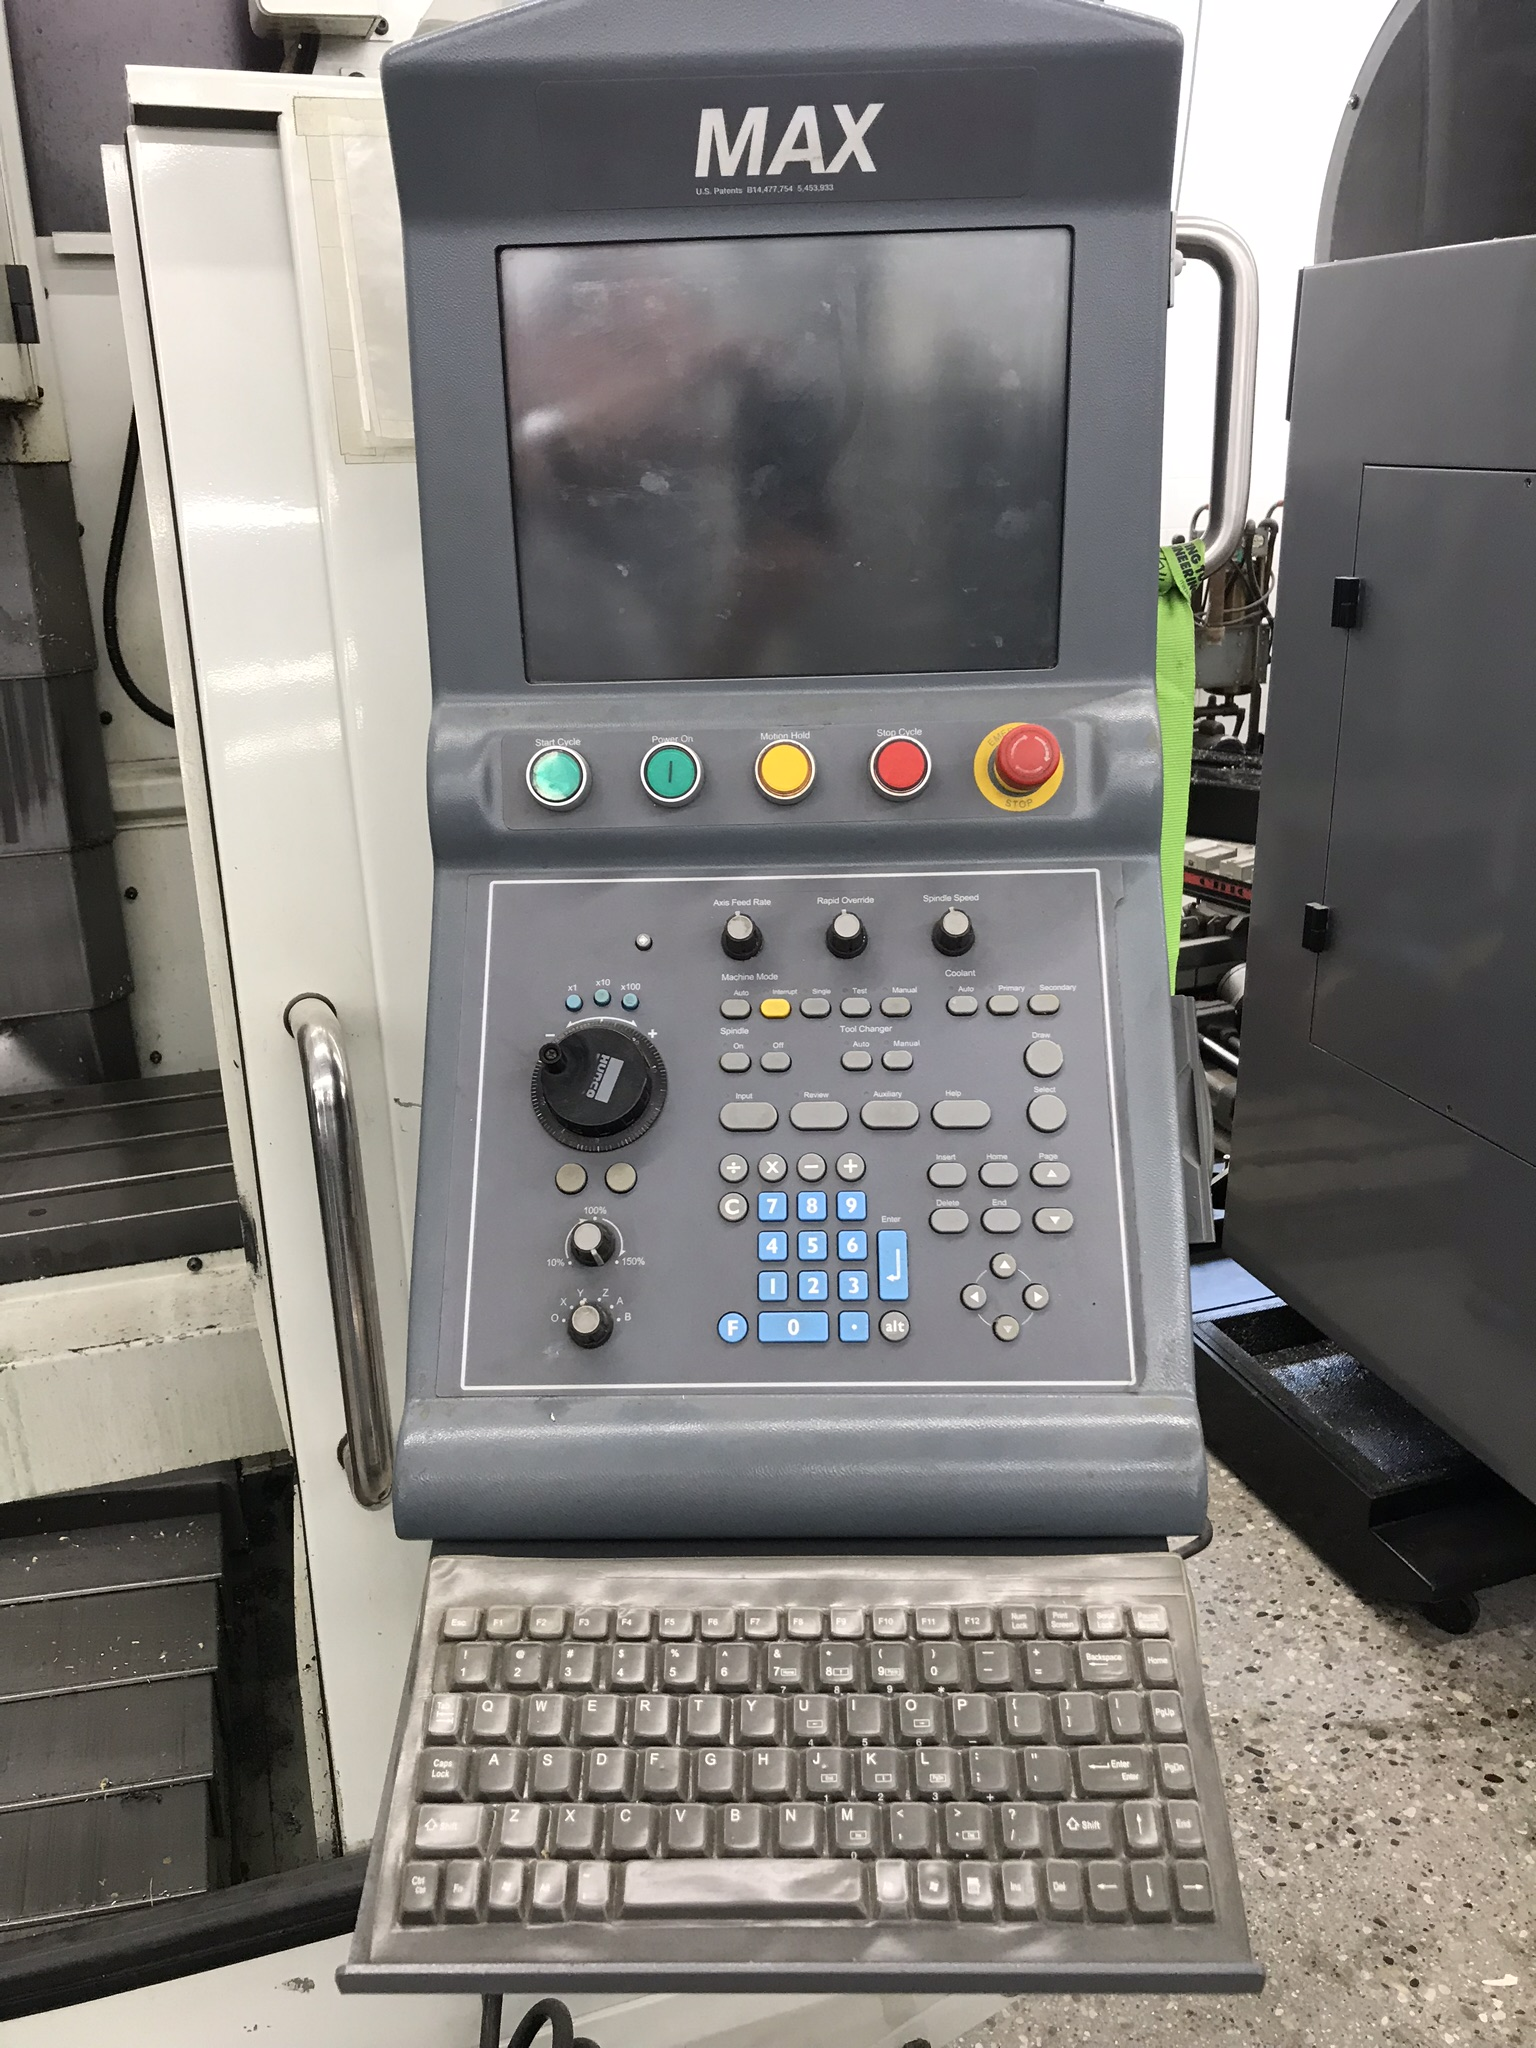 Hurco VM-1 CNC Vertical Machining Center, Spindle Recently Replaced, Approx 6,500 Hours, Max Control - Image 4 of 6